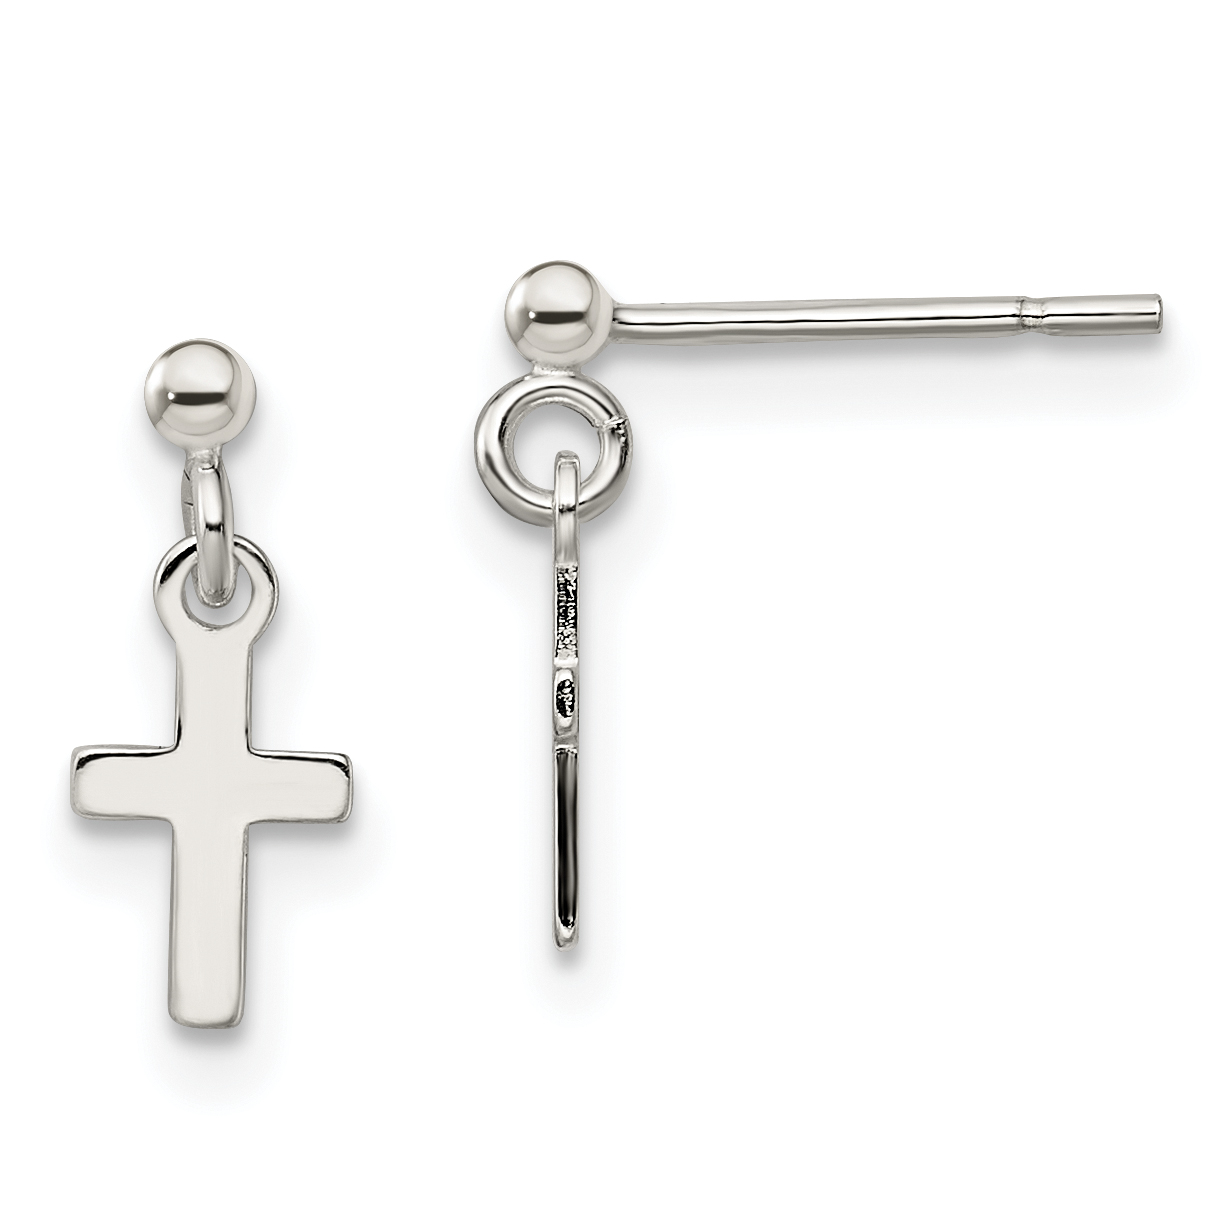 Sterling Silver Cross Post Earrings Weight 0 6 Grams Length 24mm Width 7mm